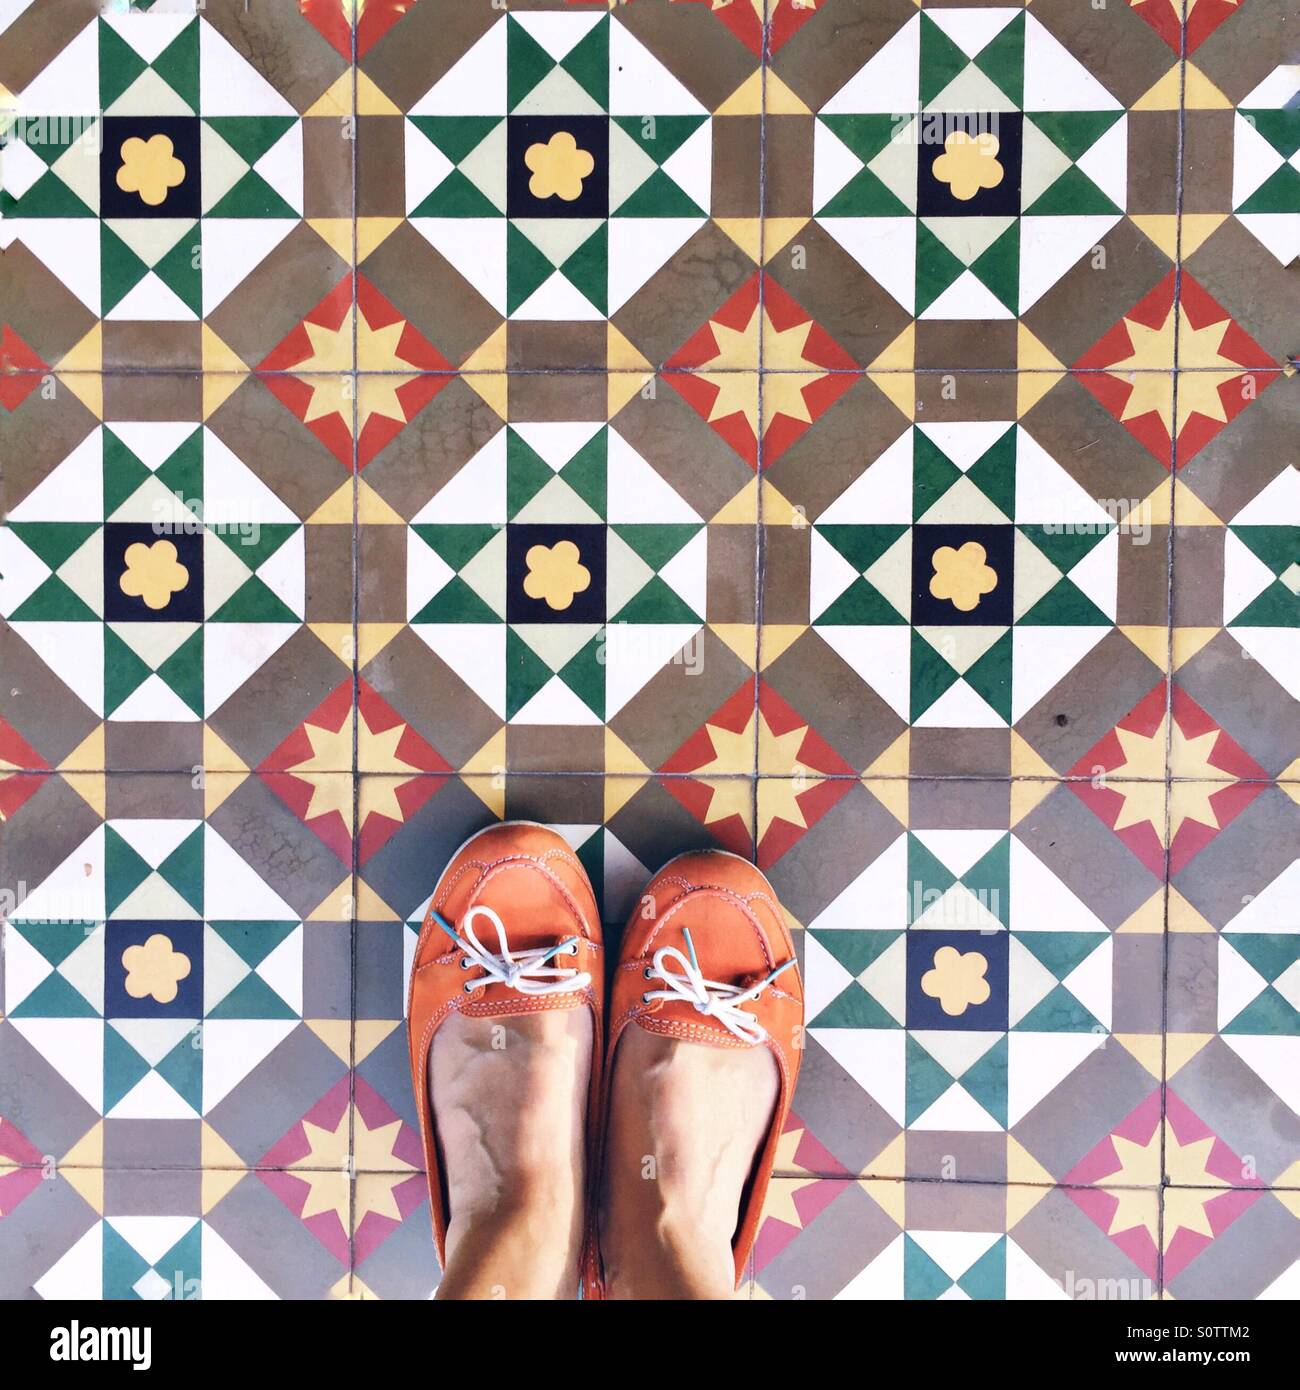 Looking down if Peranakan tiles - Stock Image